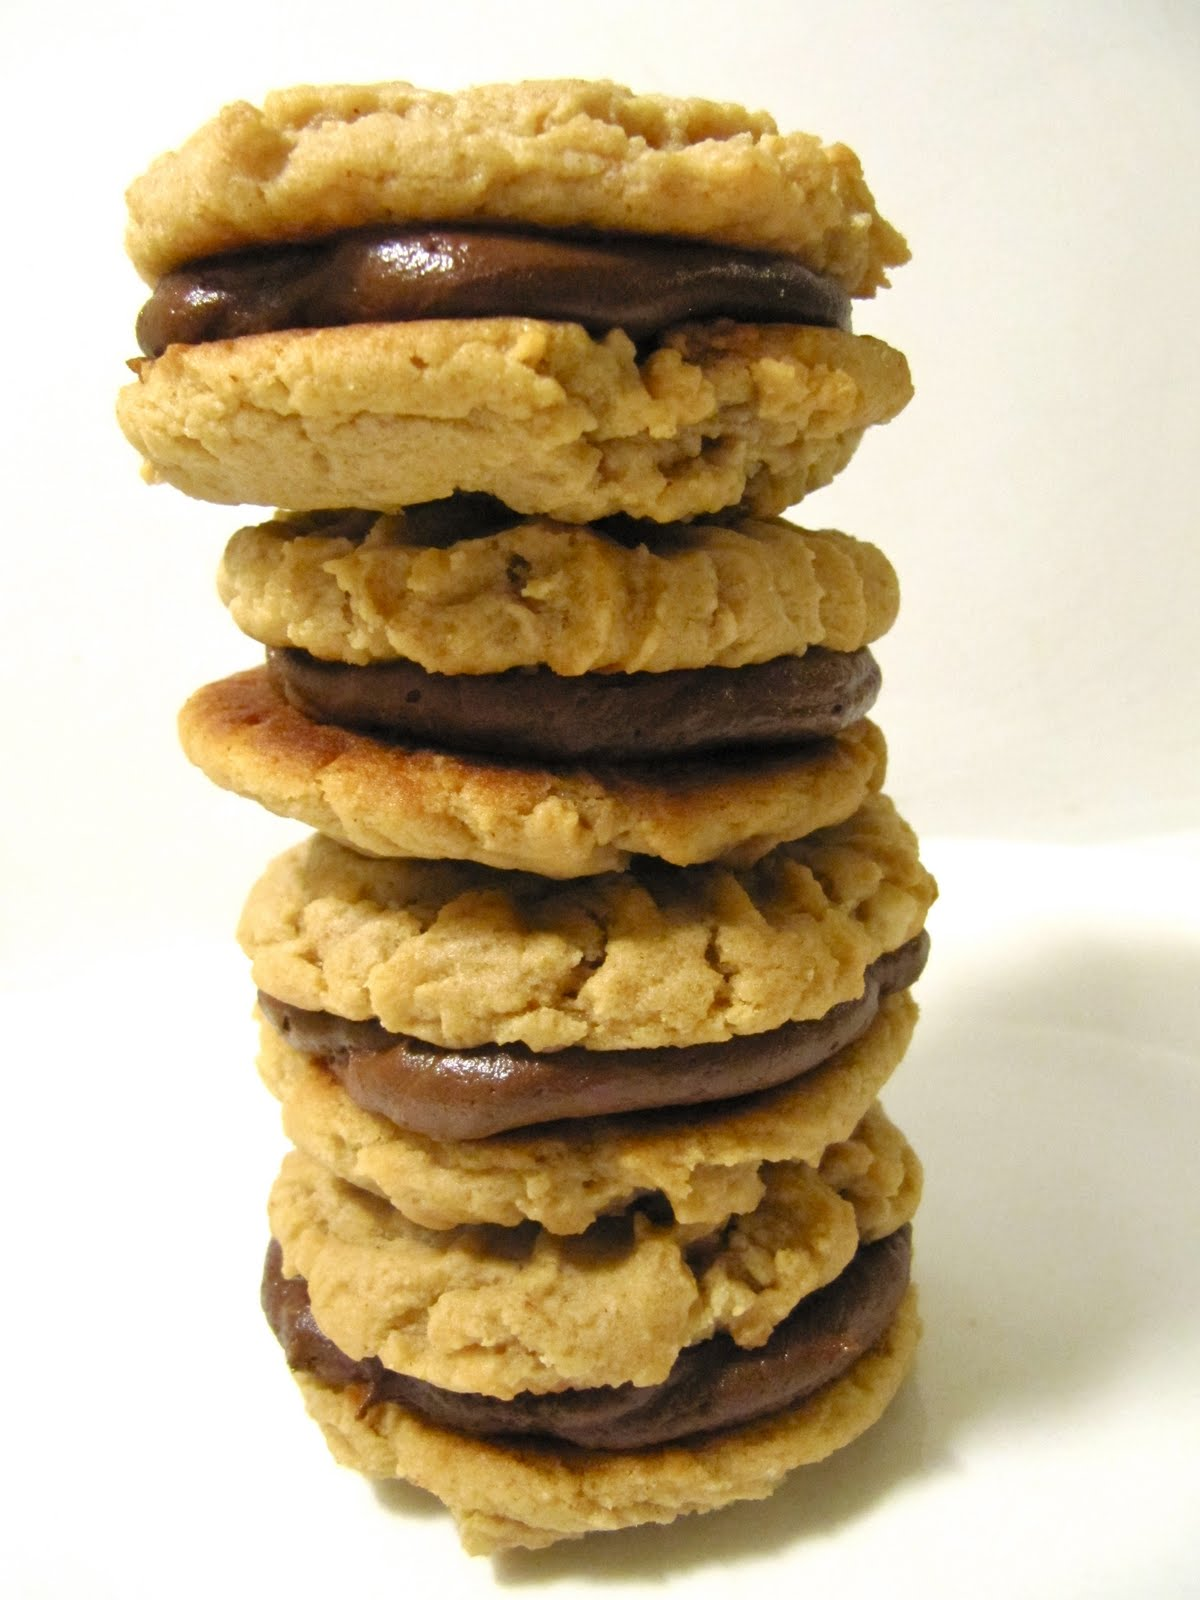 Yammie's Noshery: Chocolate Peanut Butter Cookie Sandwiches